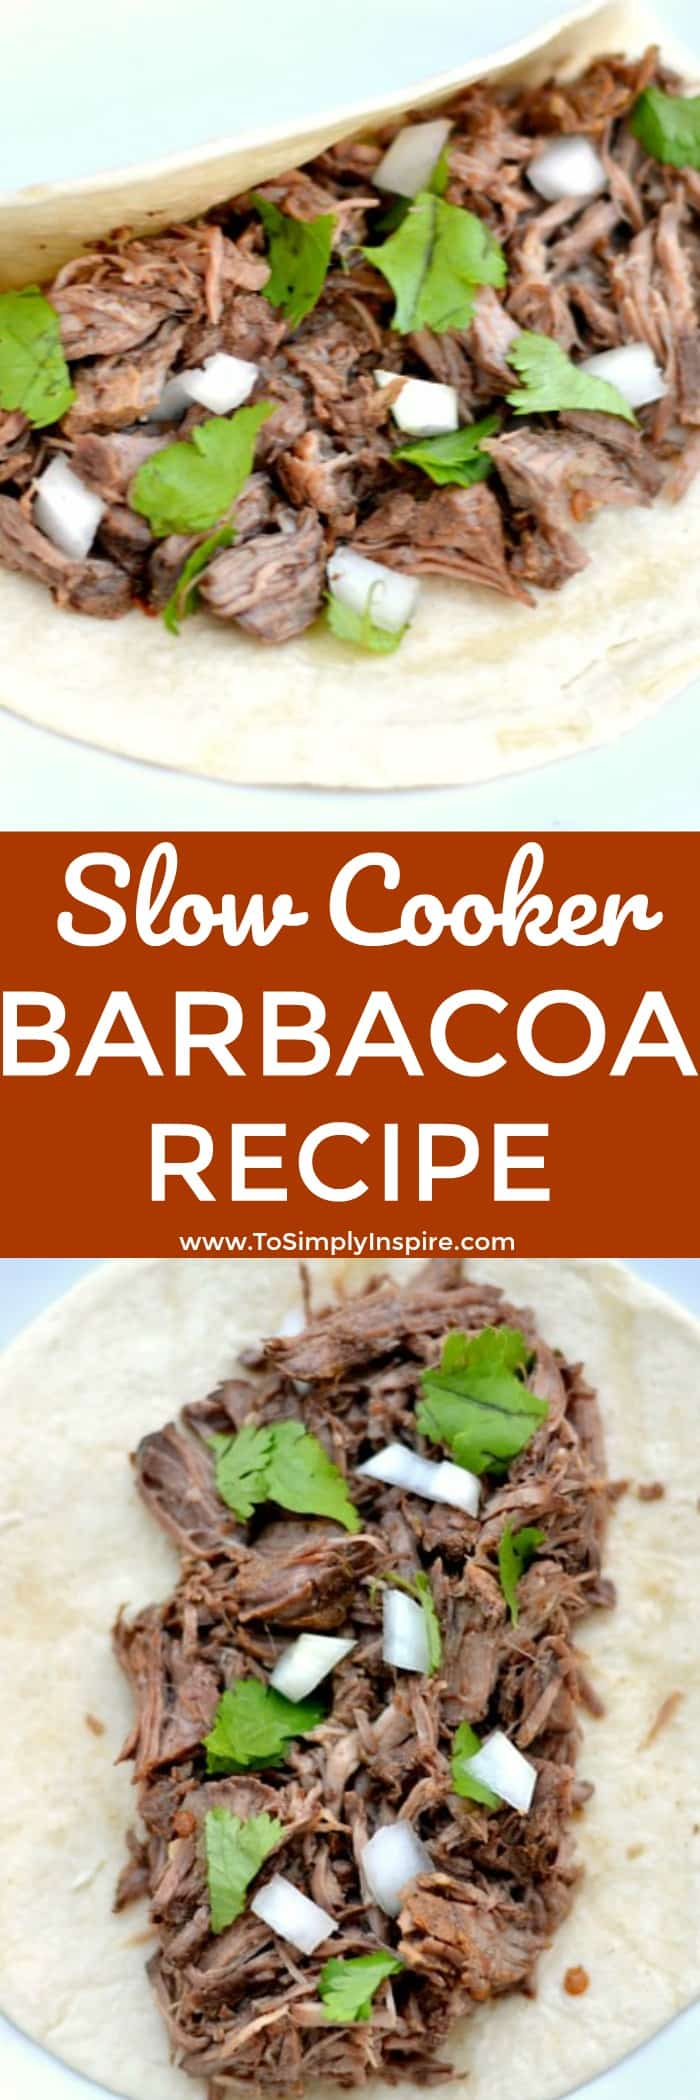 This authentic barbacoa recipe is a simple slow cooker meal that makes the most tender, flavorful, delicious barbacoa beef.